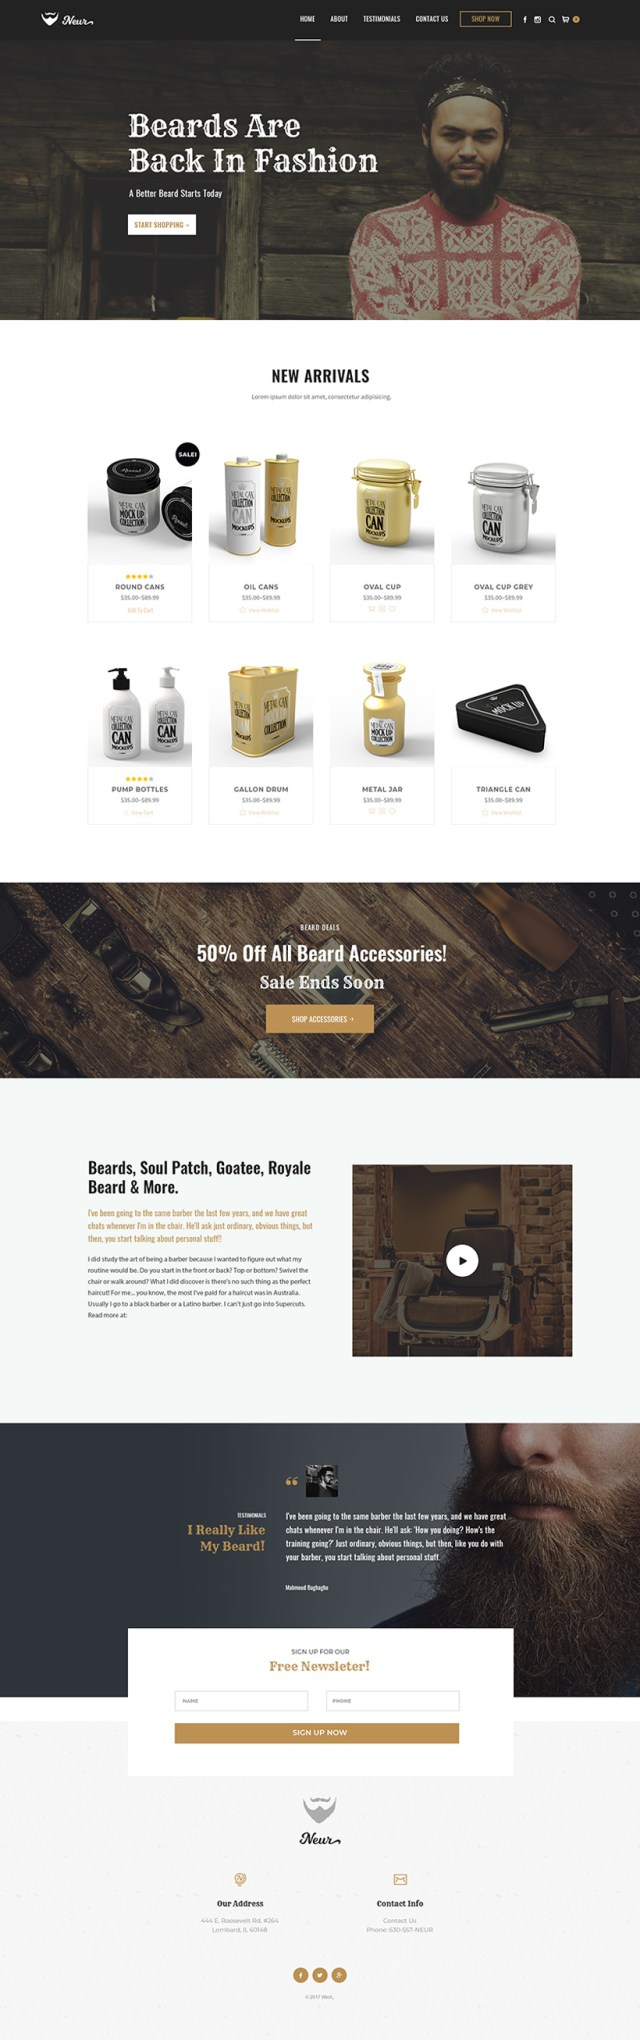 Beard Oil WordPress Website Design Mockup